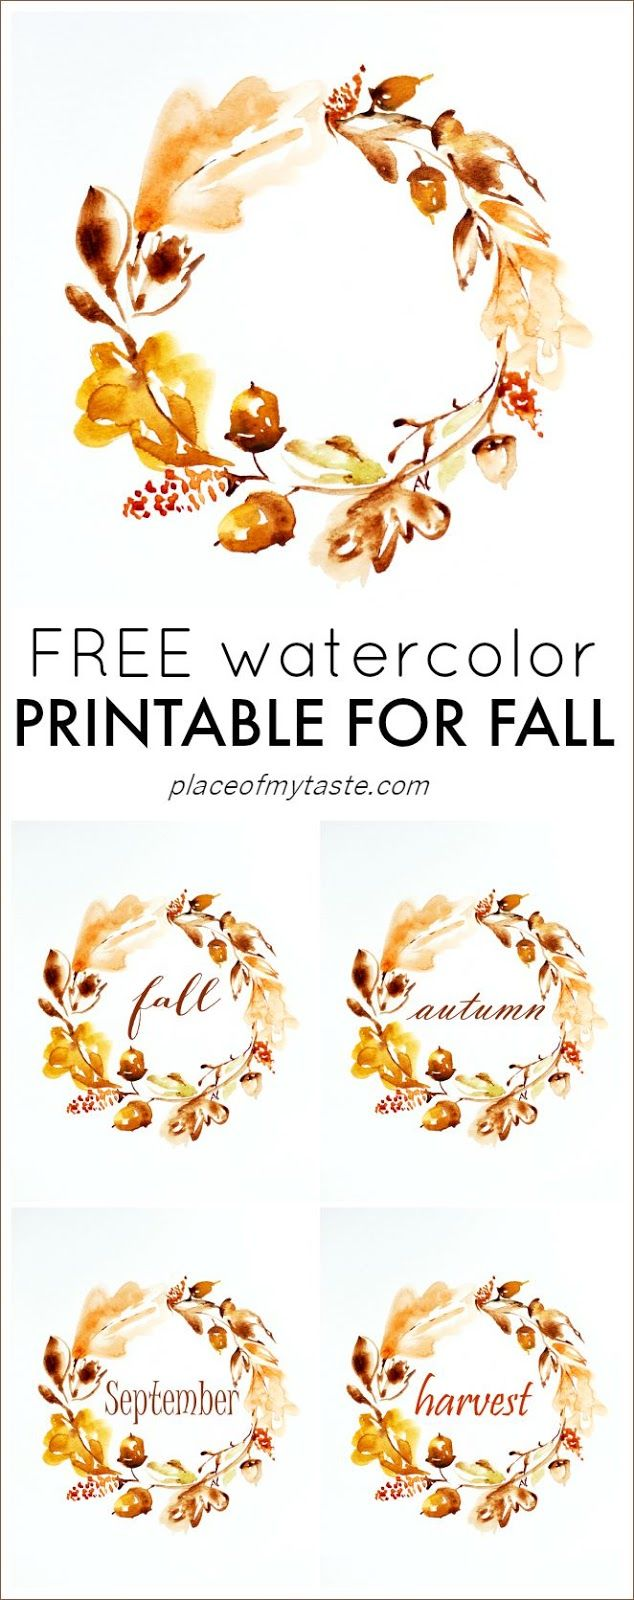 20 Free and Fabulous Fall Printables is part of Fall printables, Free fall printables, Fall crafts, Fall decor, Fabulous fall, Thanksgiving printables - Update your home for fall with these fabulous and FREE fall printables! www littlehouseoffour com